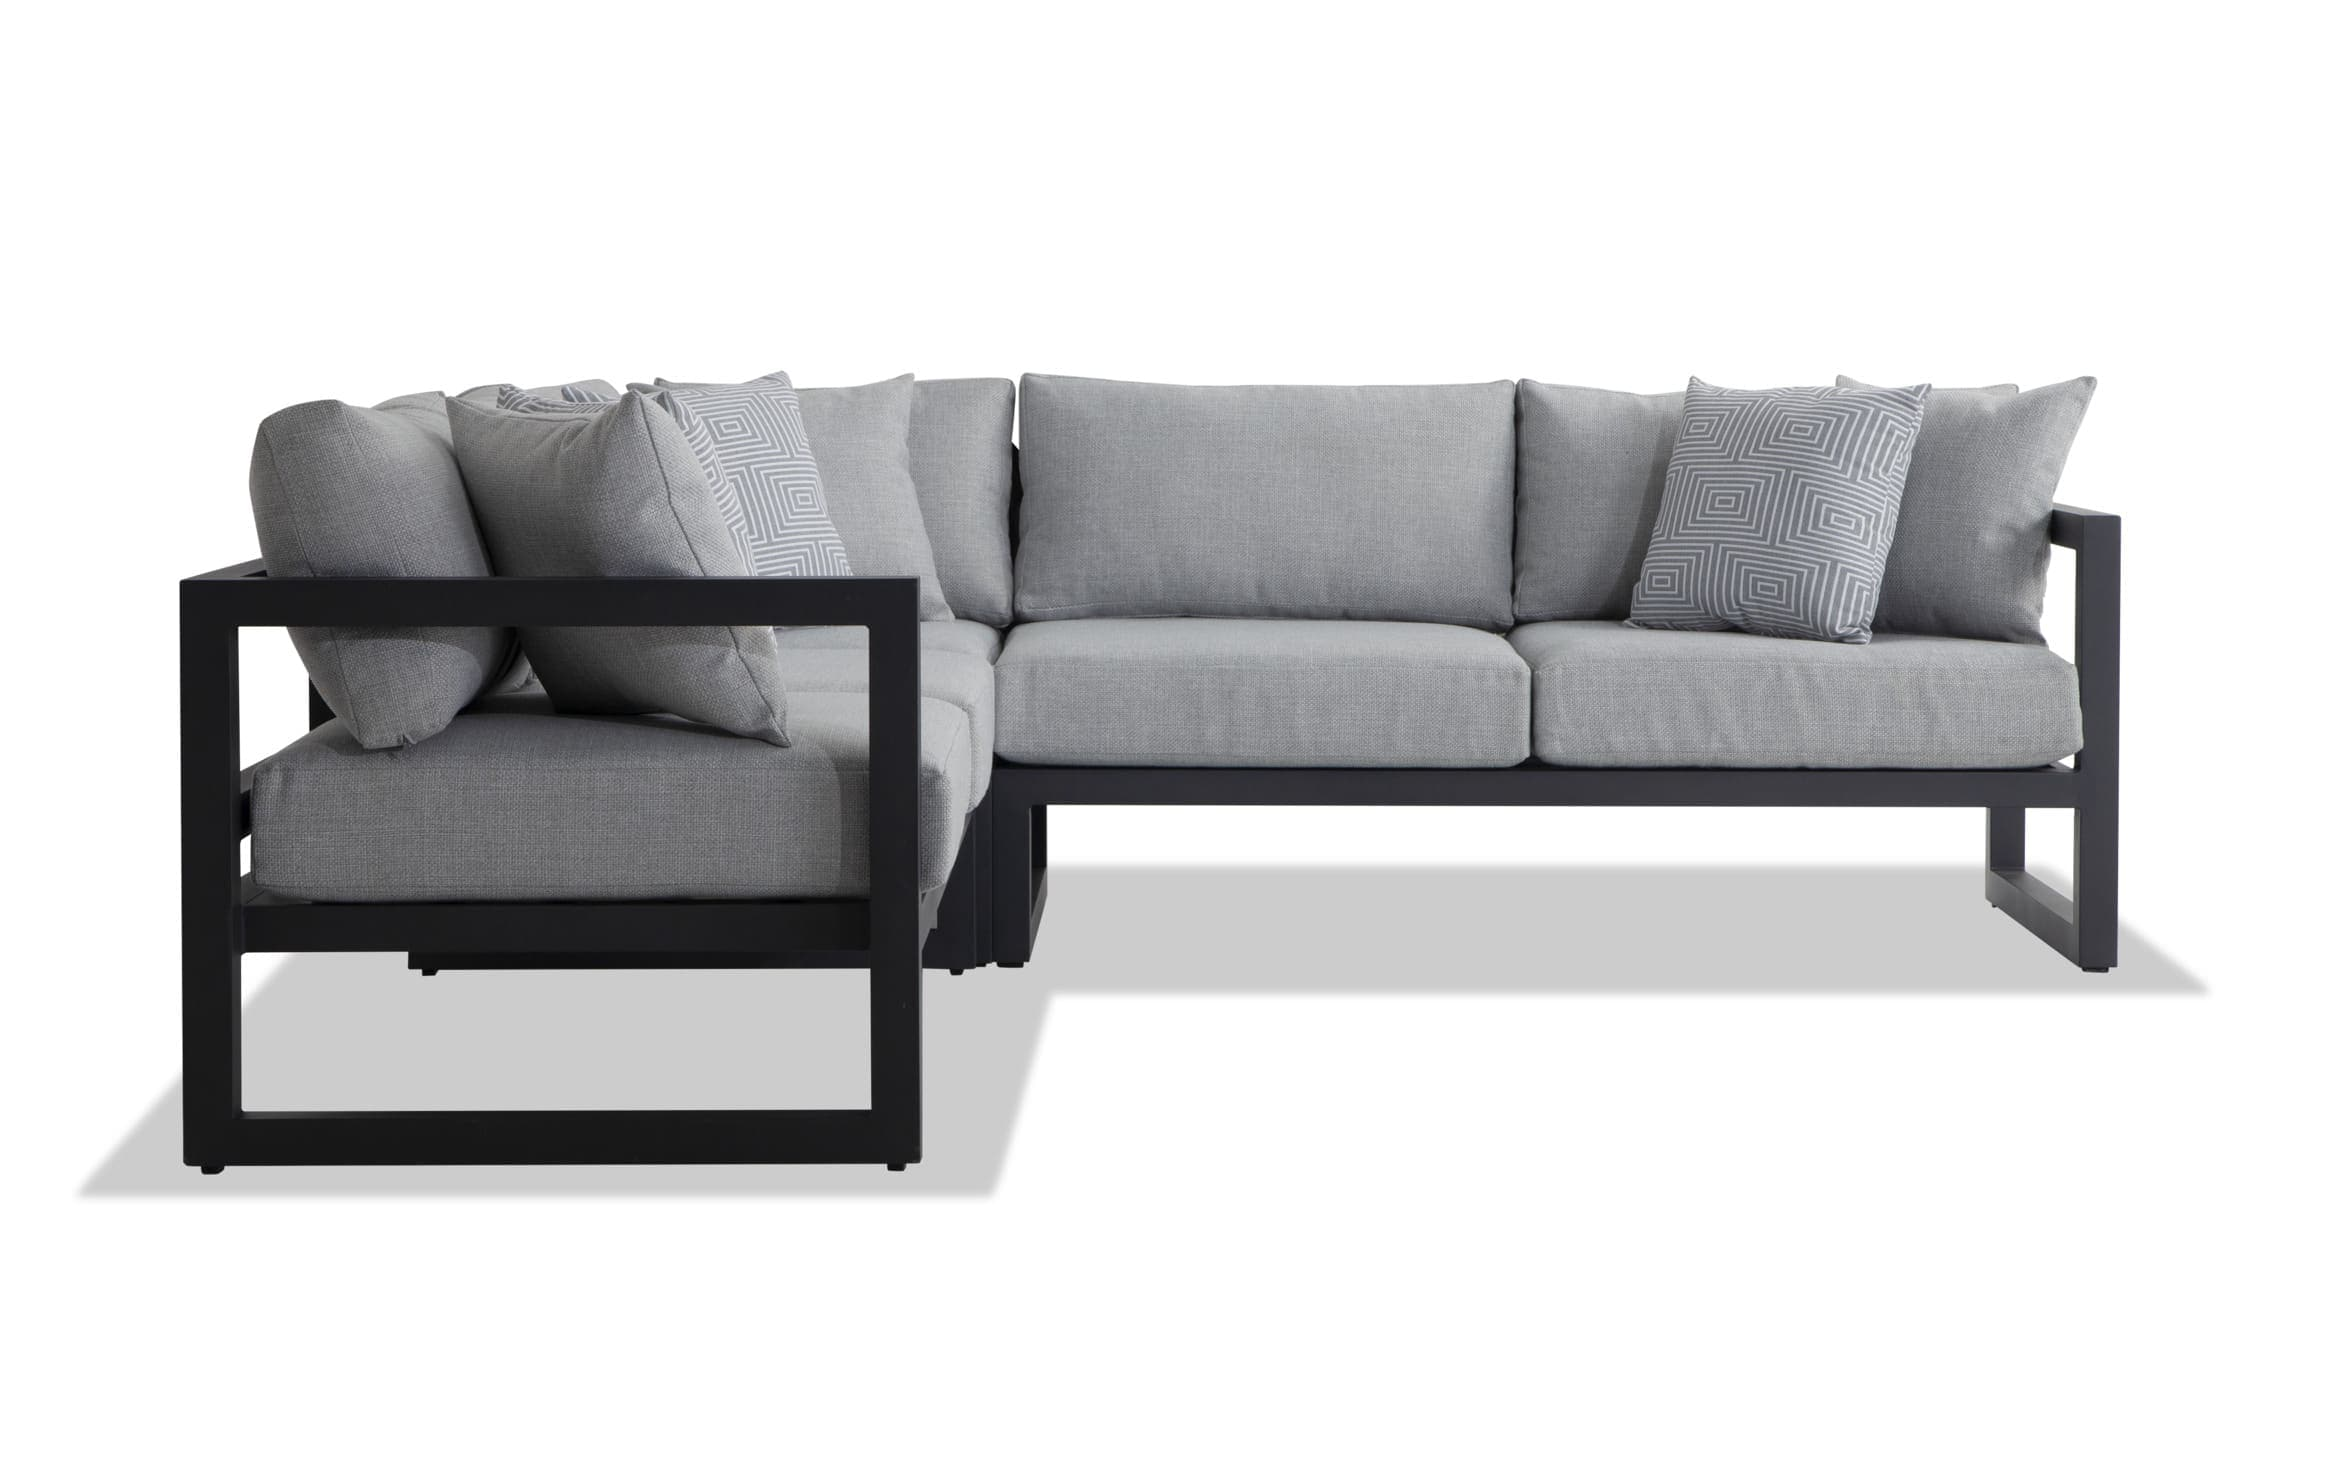 Hollywood 3 Piece Outdoor Sectional with Cover | Outlet | Bobs.com